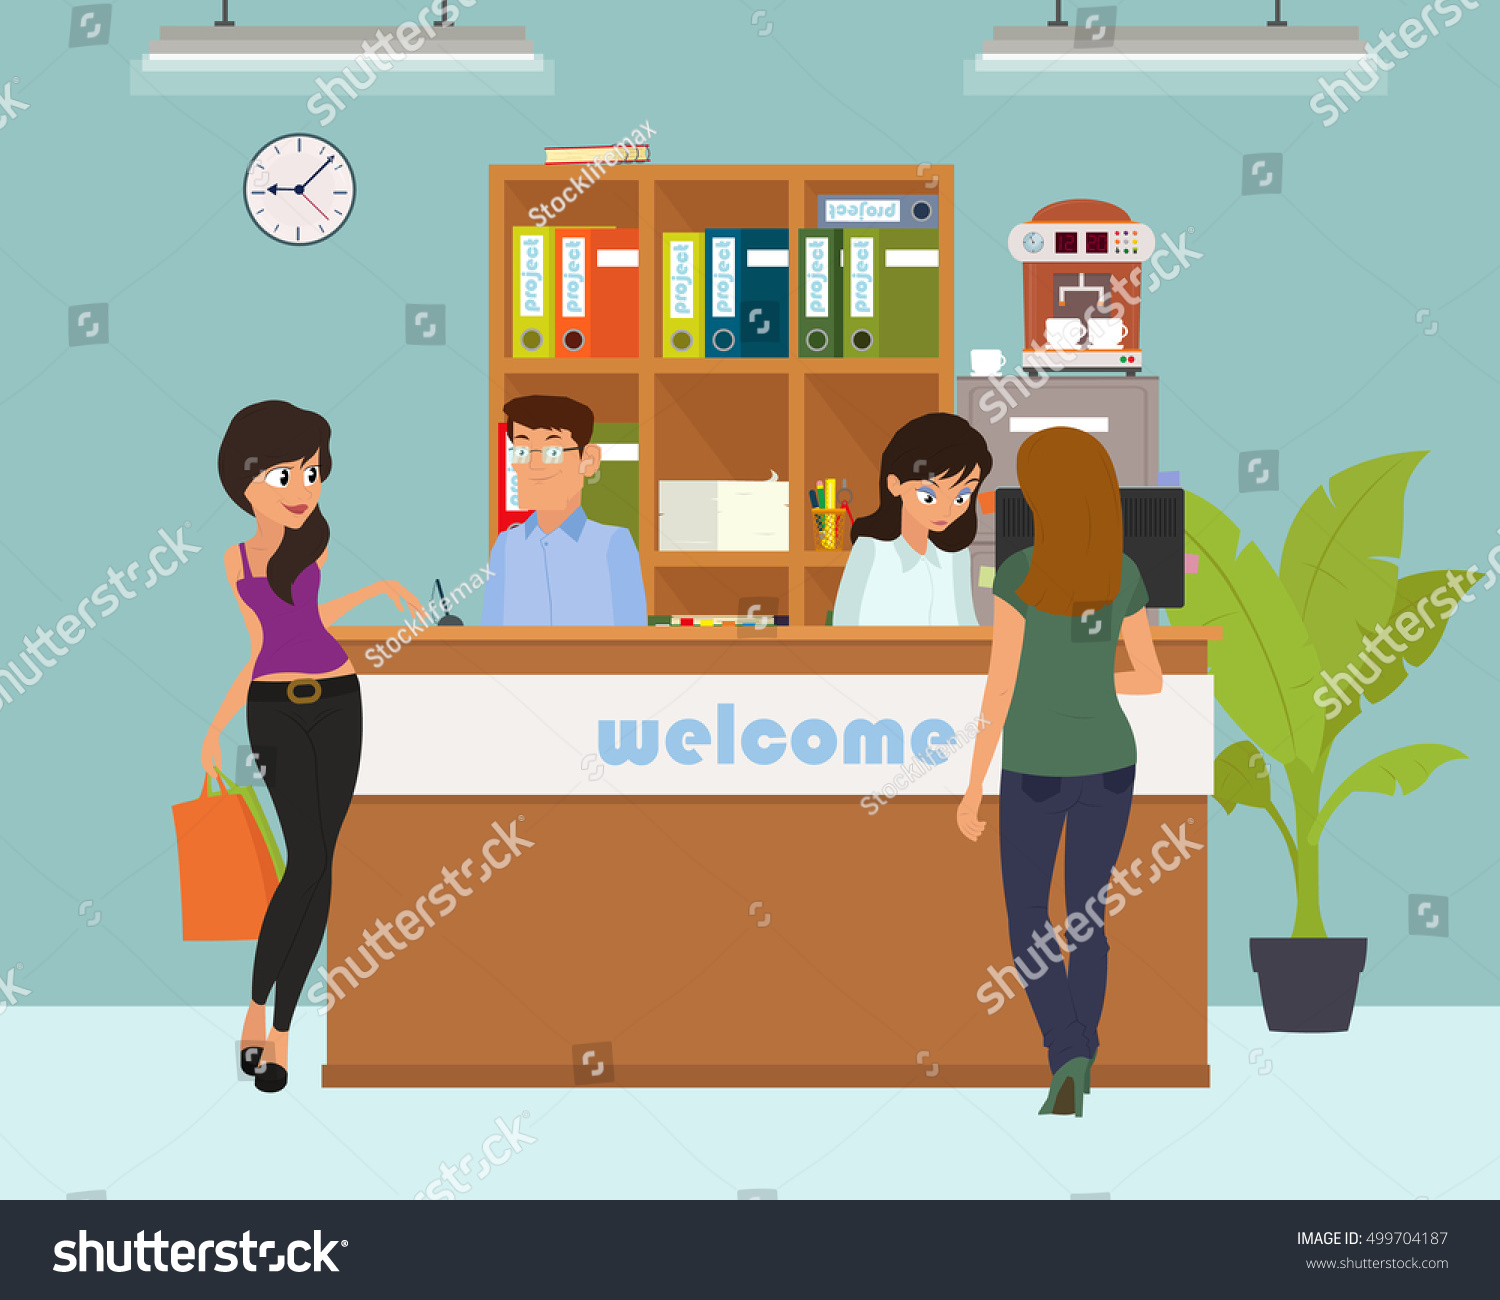 Office Receptiondesign: Reception Service Hotel Desk Business Office Stock Vector